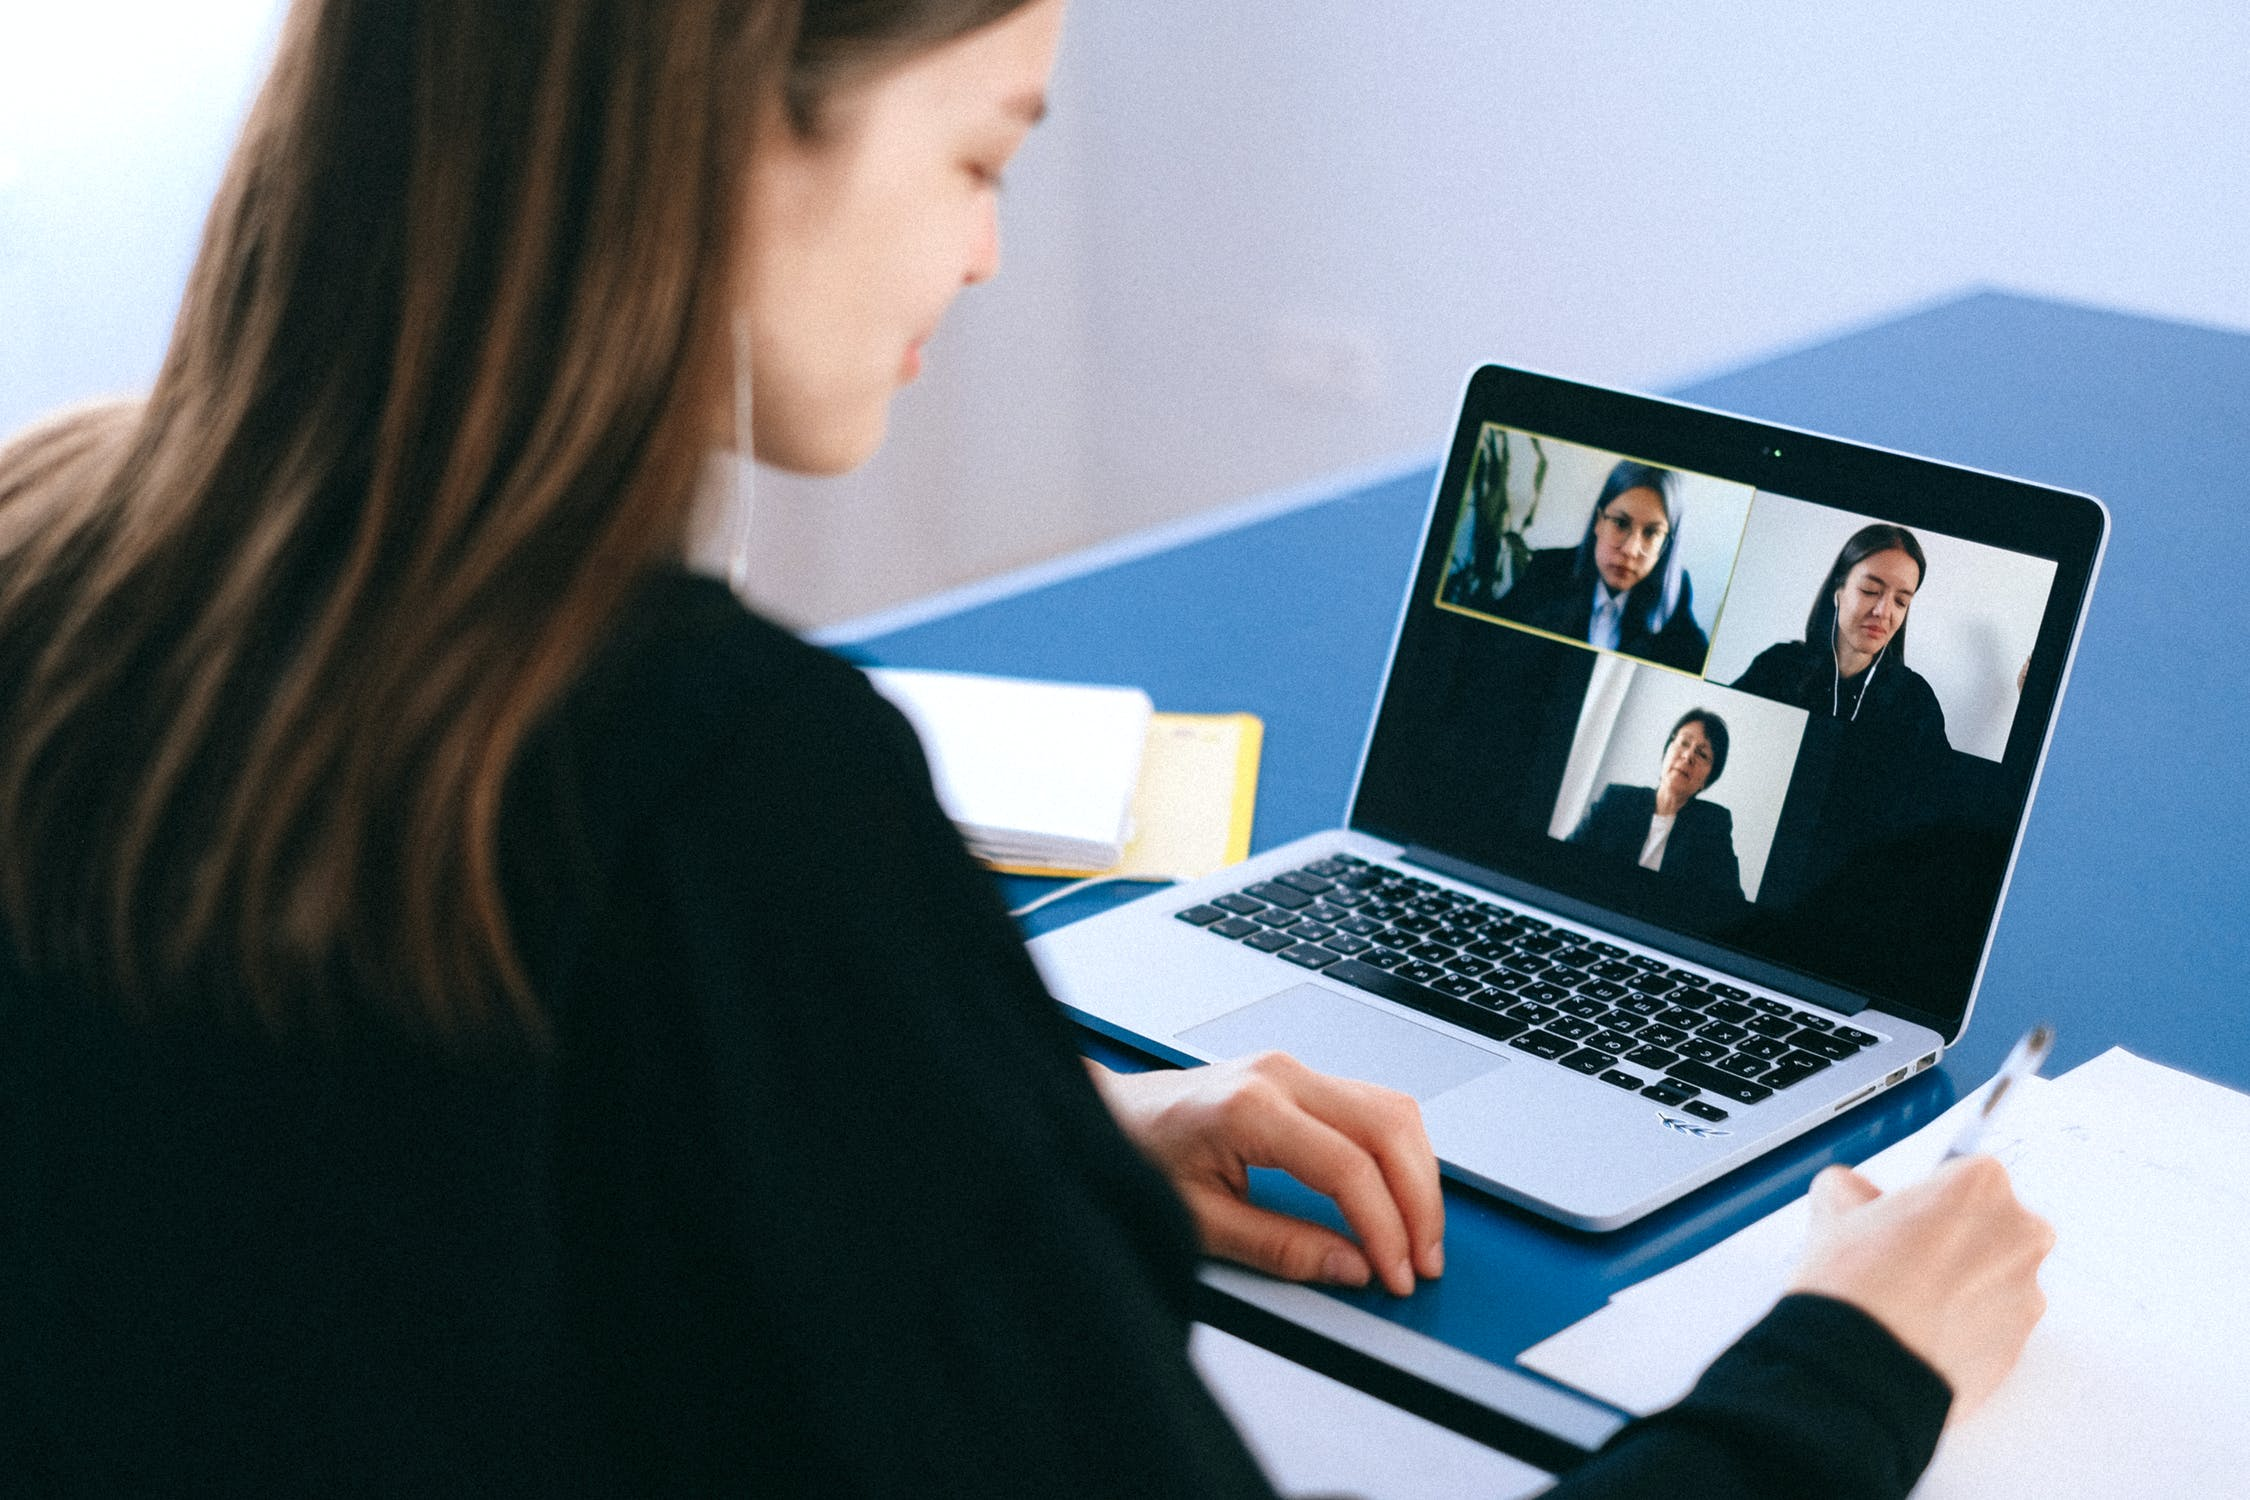 People on a video call - Photo by Anna Shvets from Pexels